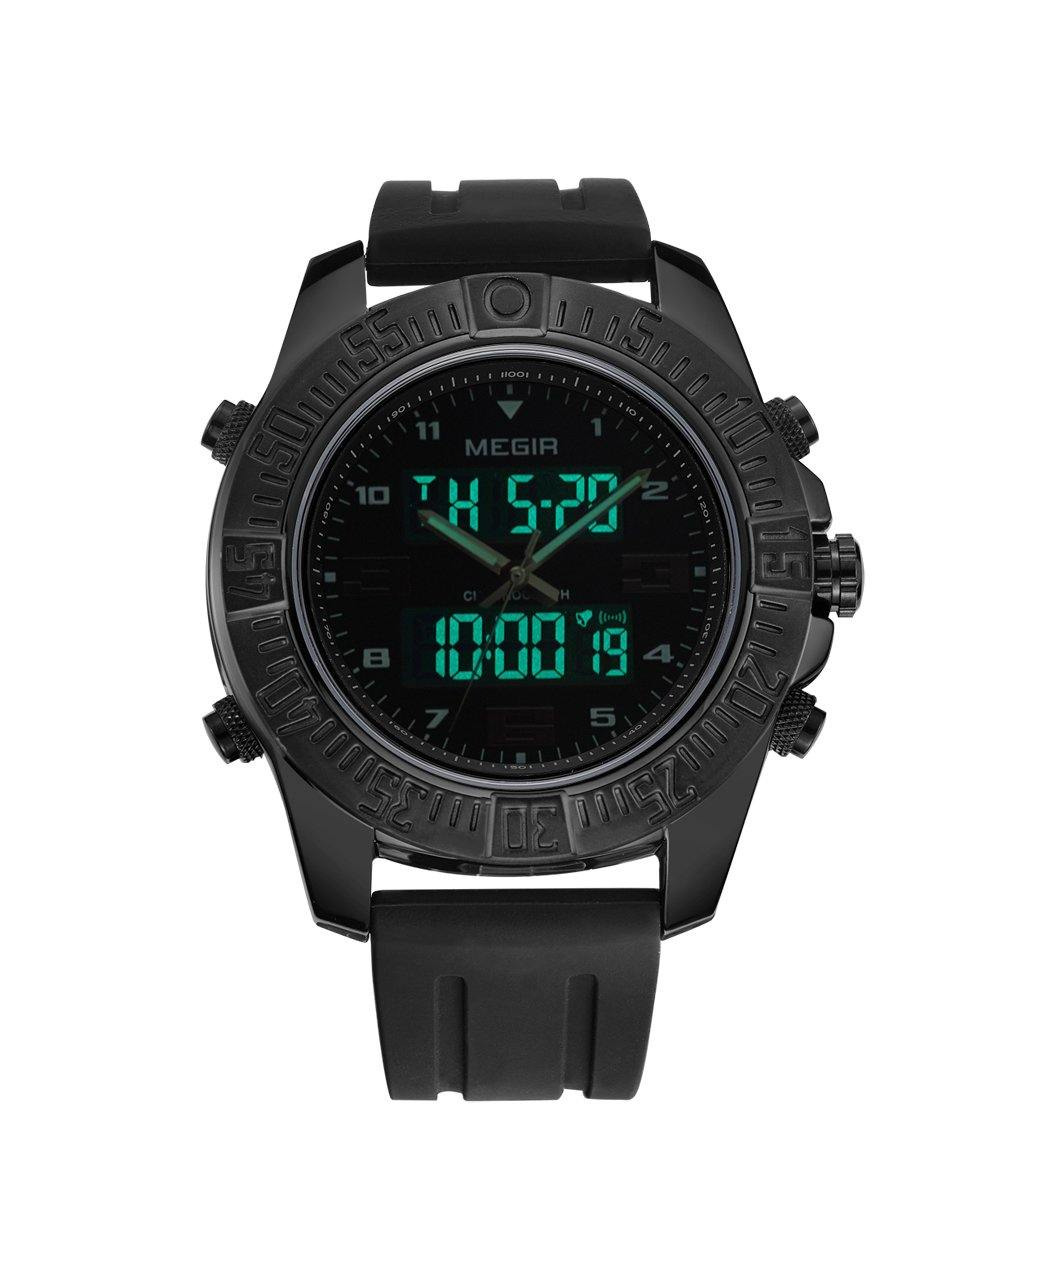 MEGIR Digital quartz watches with sports backlight and black silicone strap 2038 - MEGIR